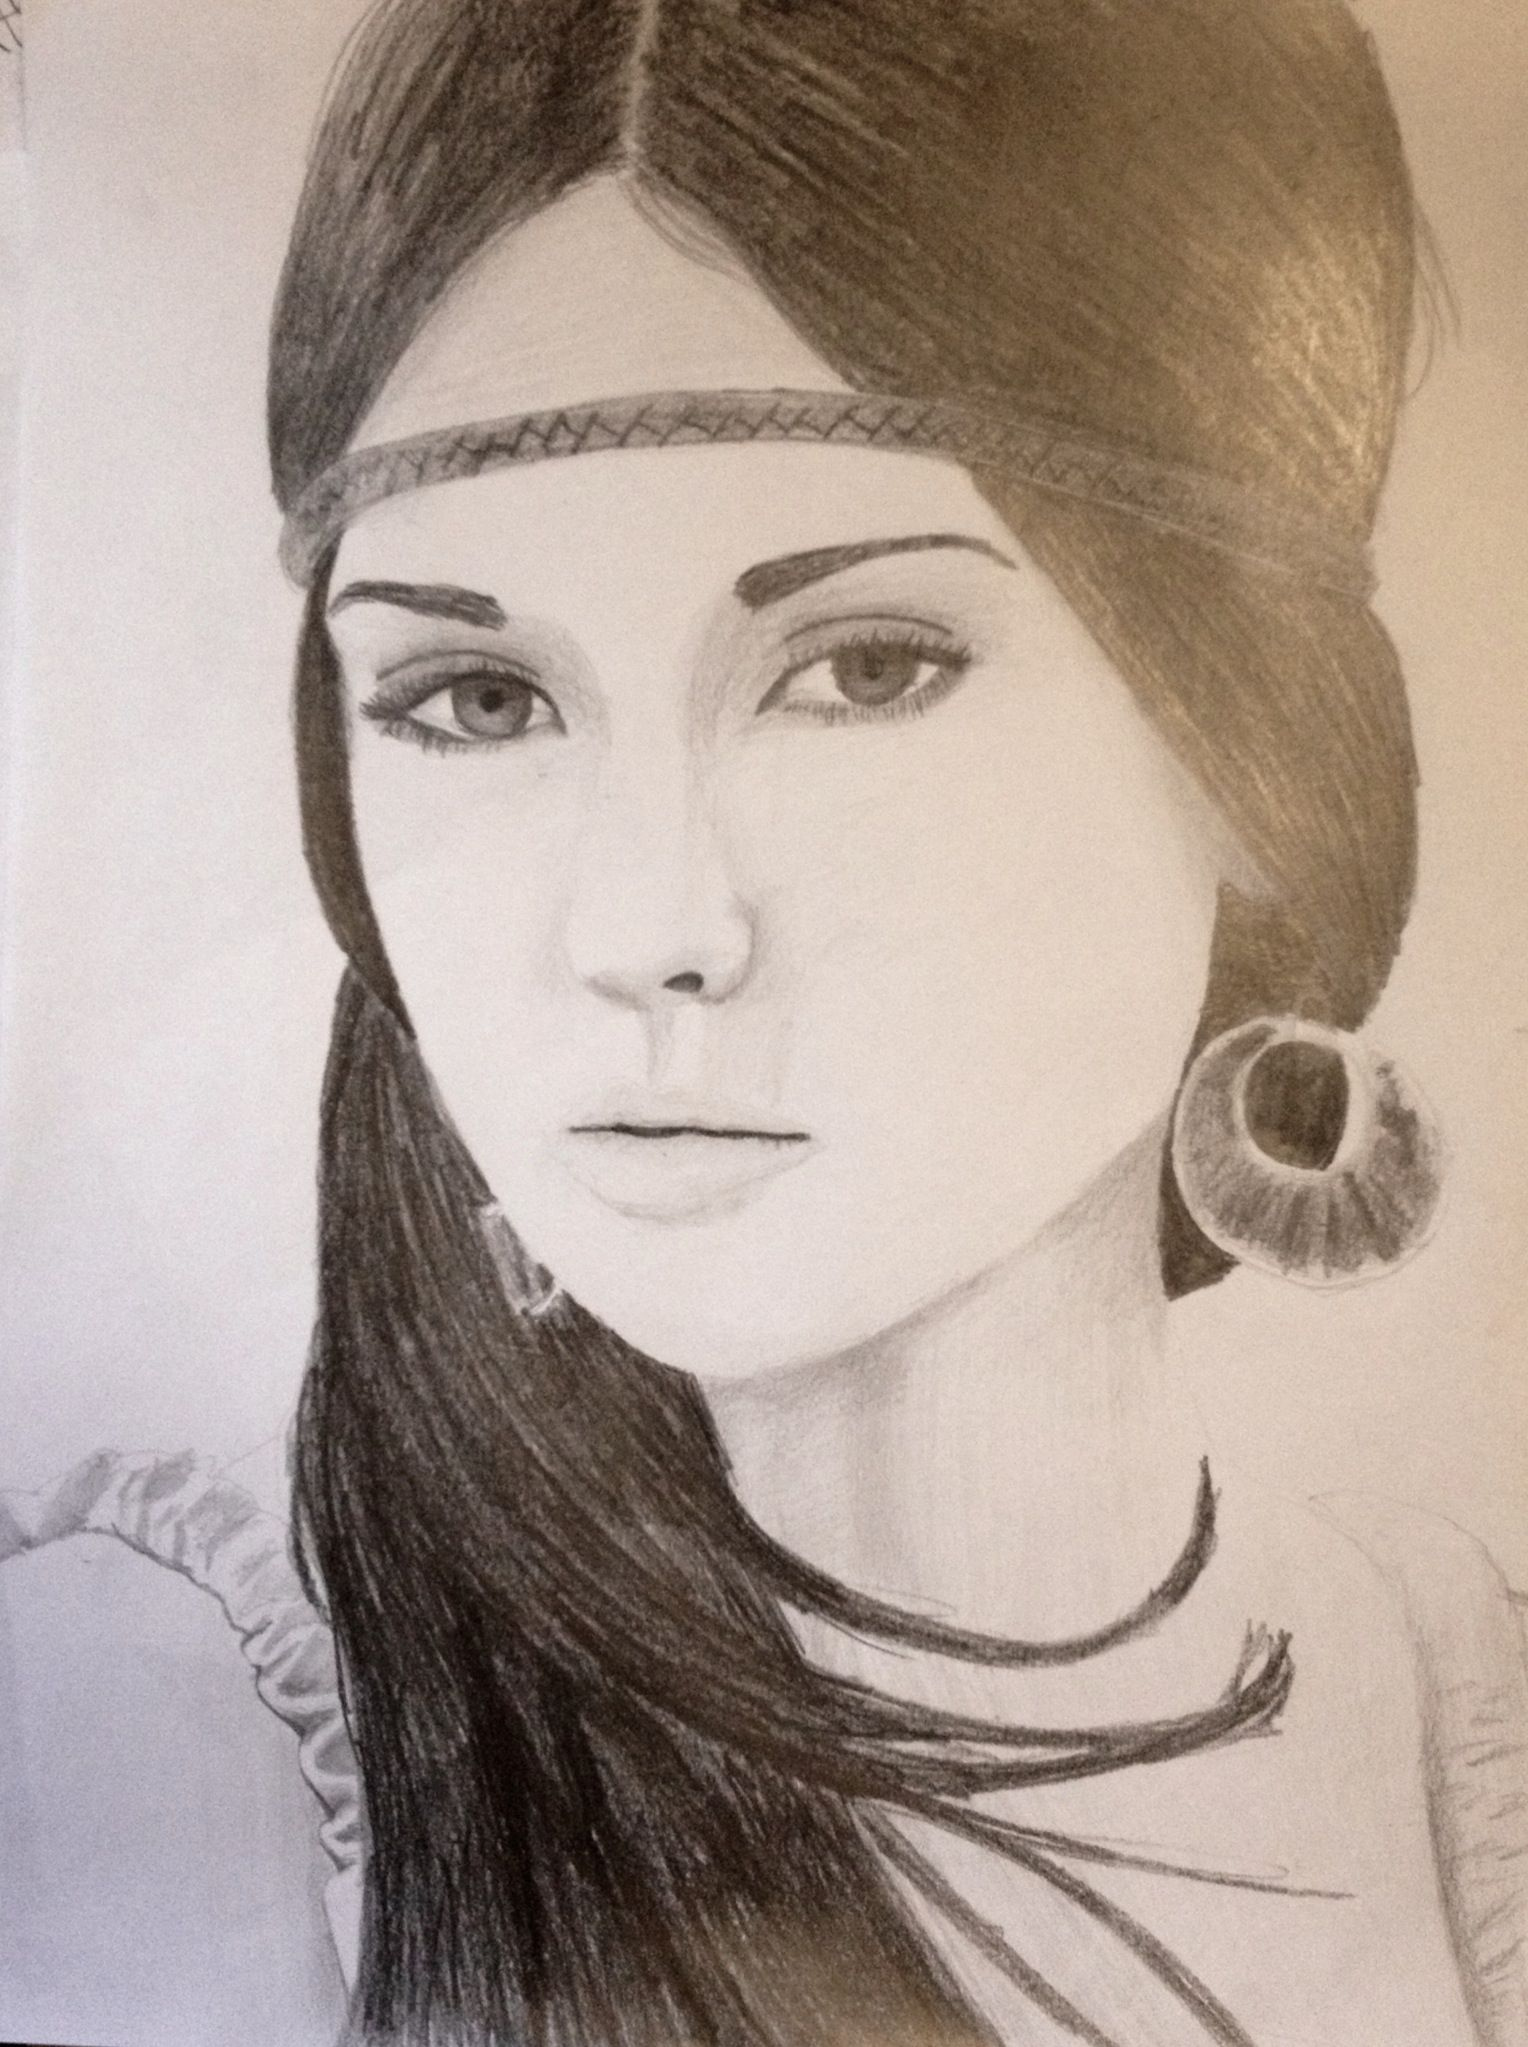 Indian girl west art indian girls artsy places to visit sketches